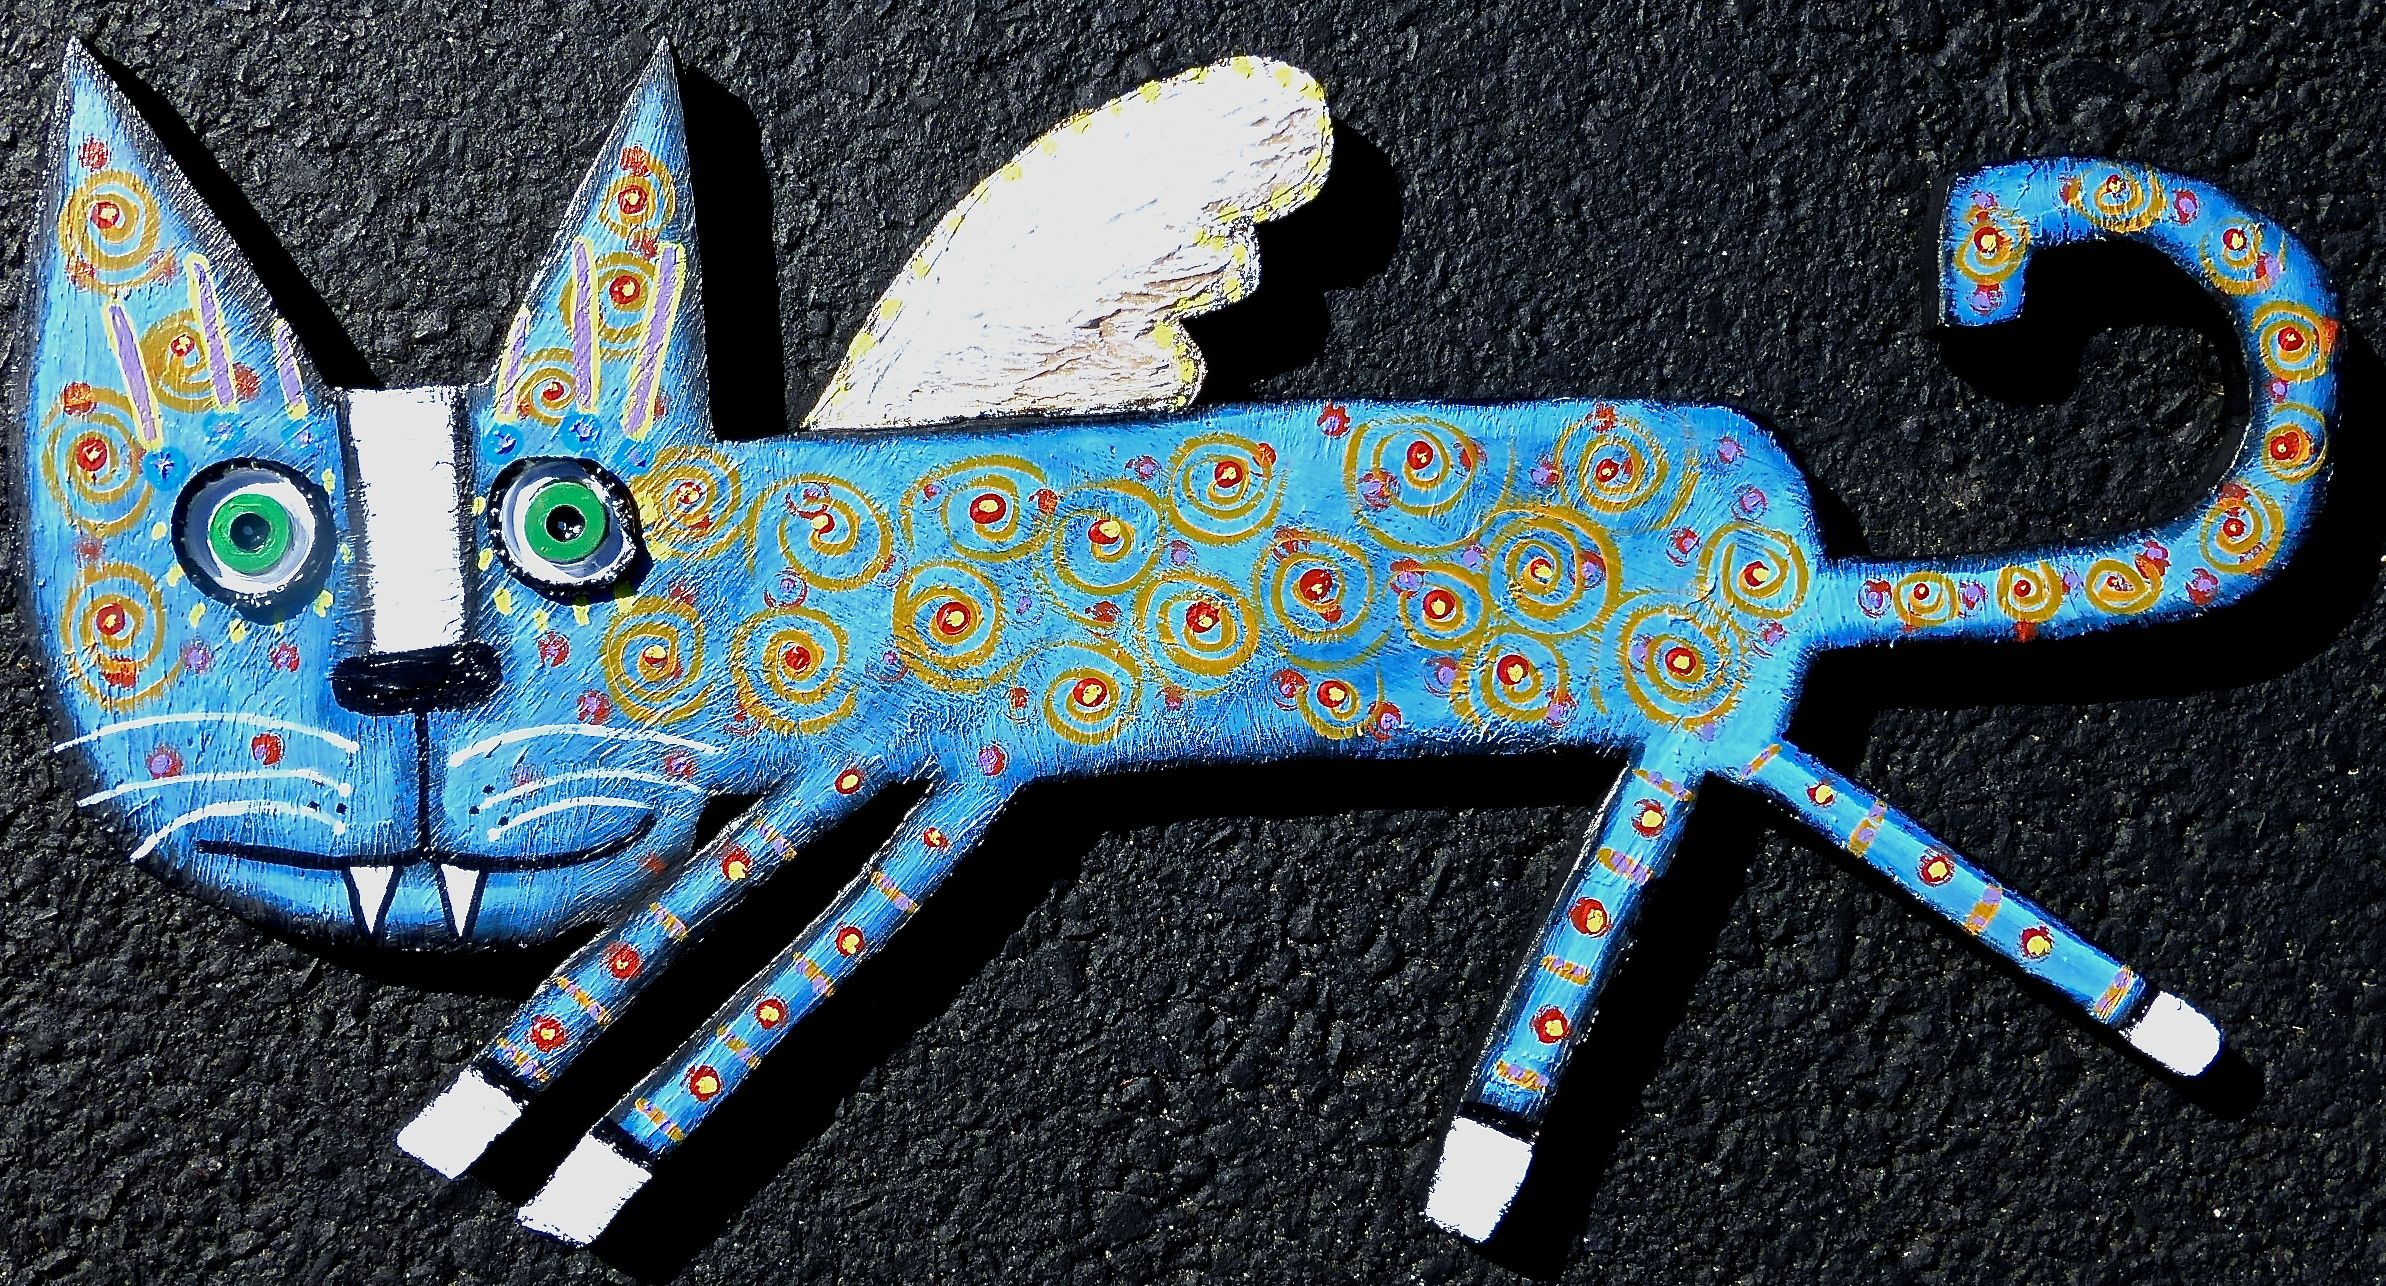 """""""Dexter The FLying Angel Kitty"""" one of a kind acrylic cutout wood cat created by artist Tracey Ann Finley #outsiderart"""